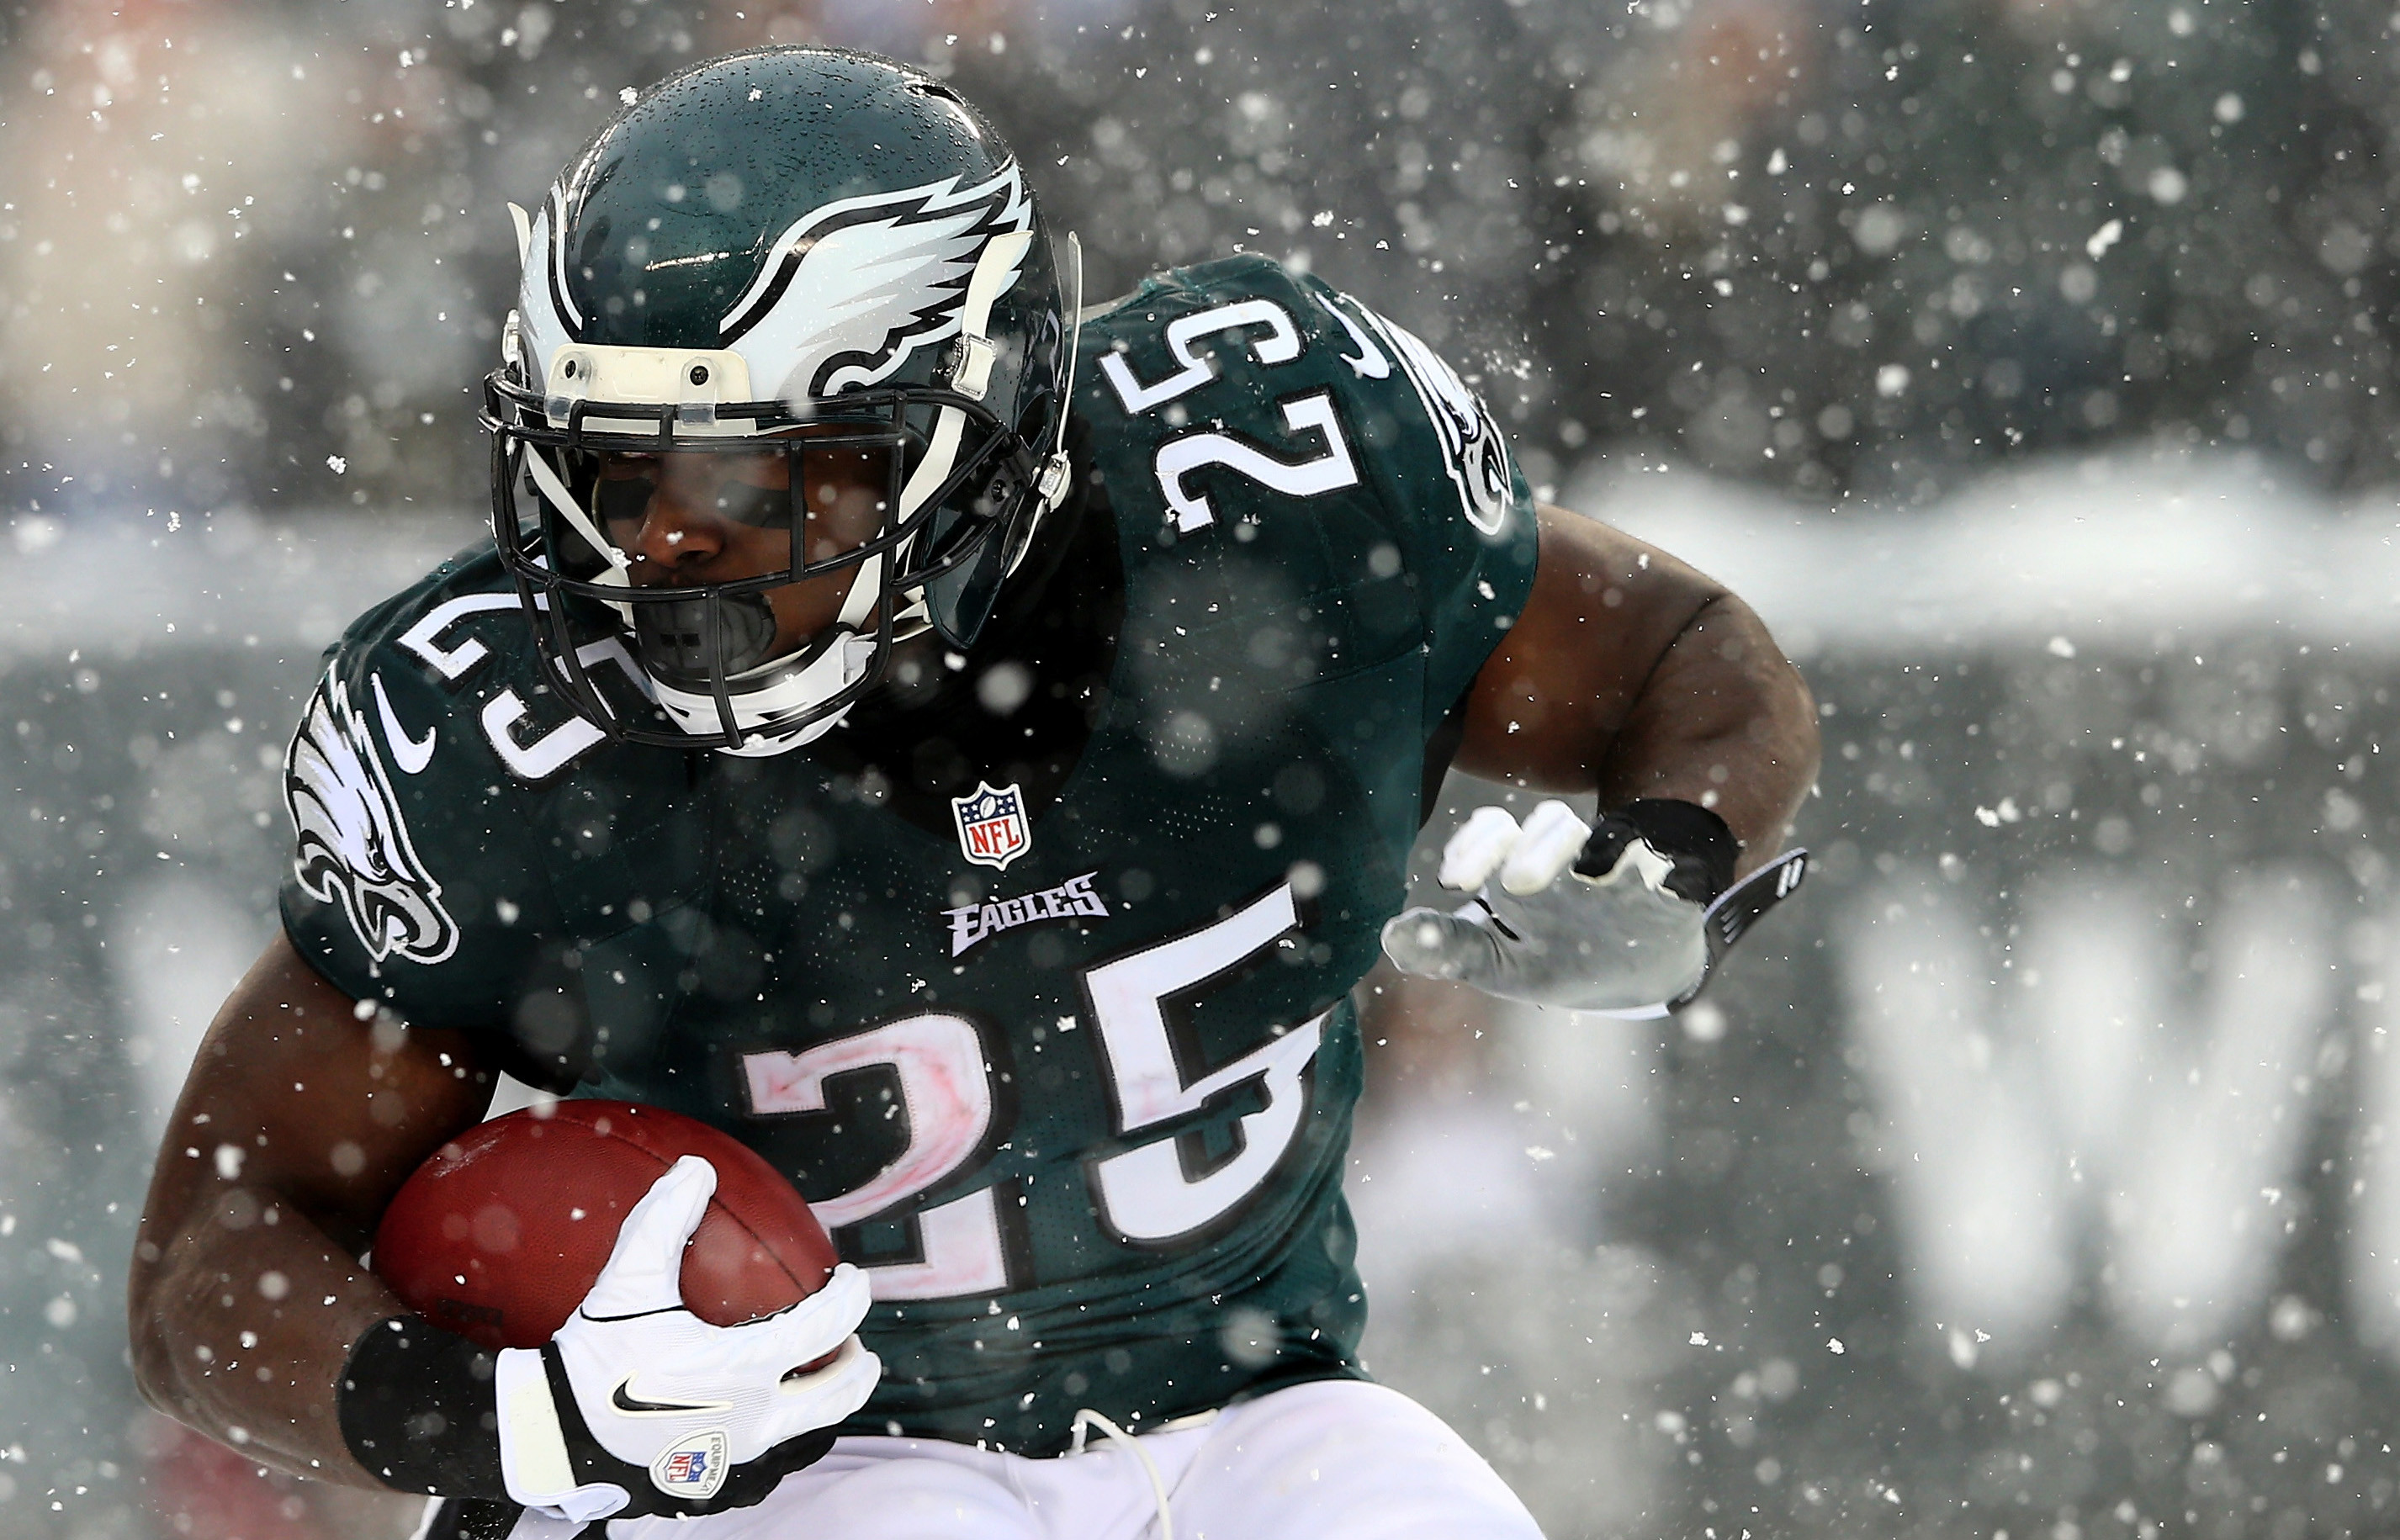 LeSean McCoy to be traded to Bills for LB Kiko Alonso — NFL — The Sports  Quotient